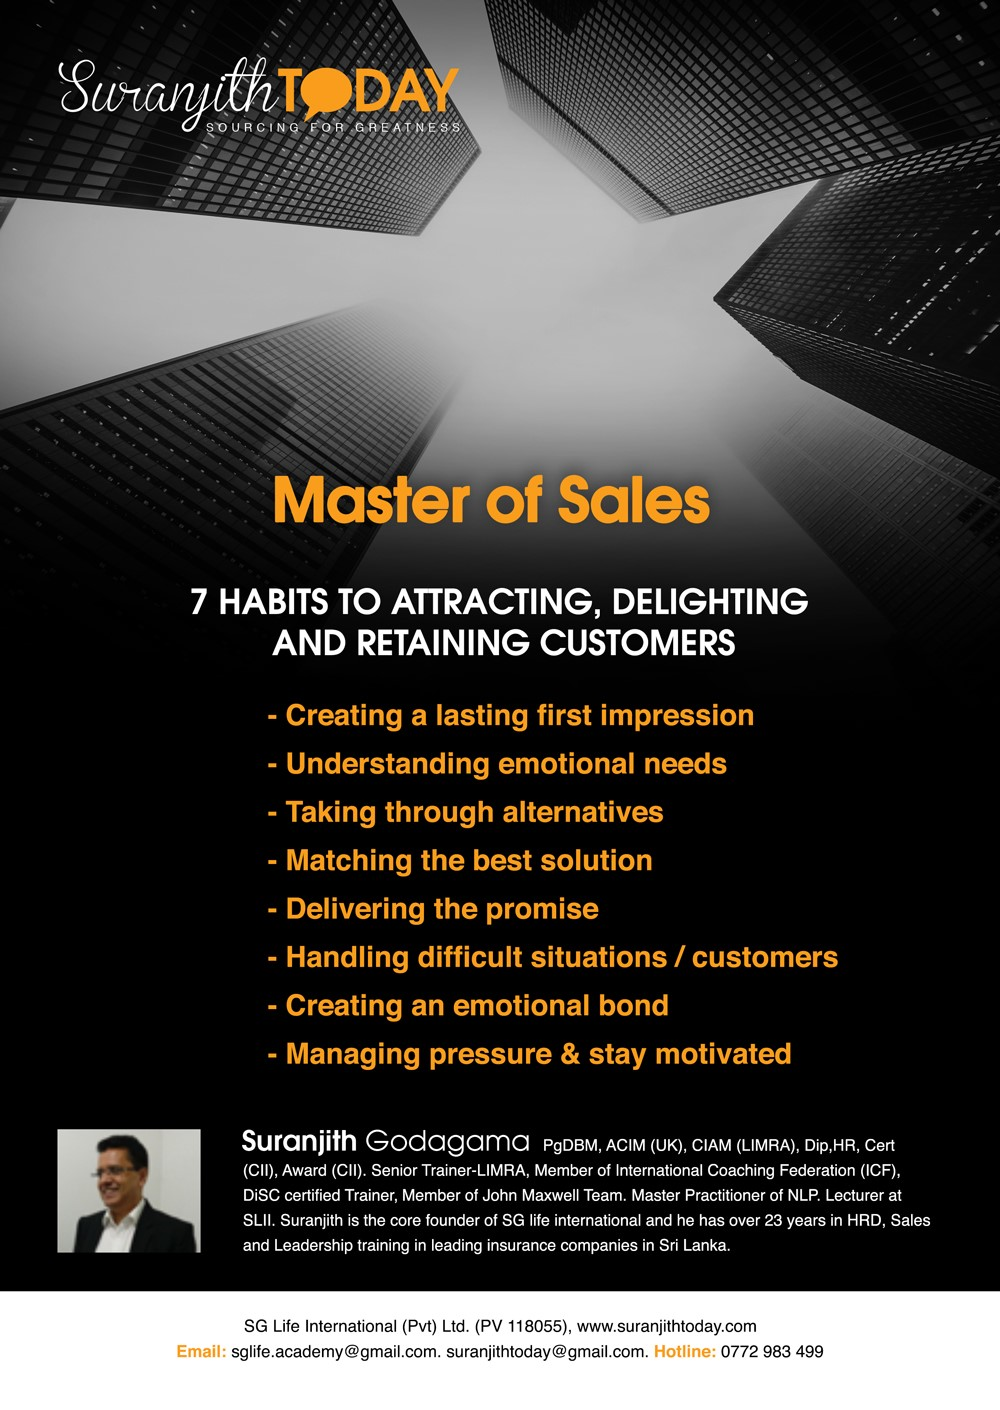 Mater of Sales